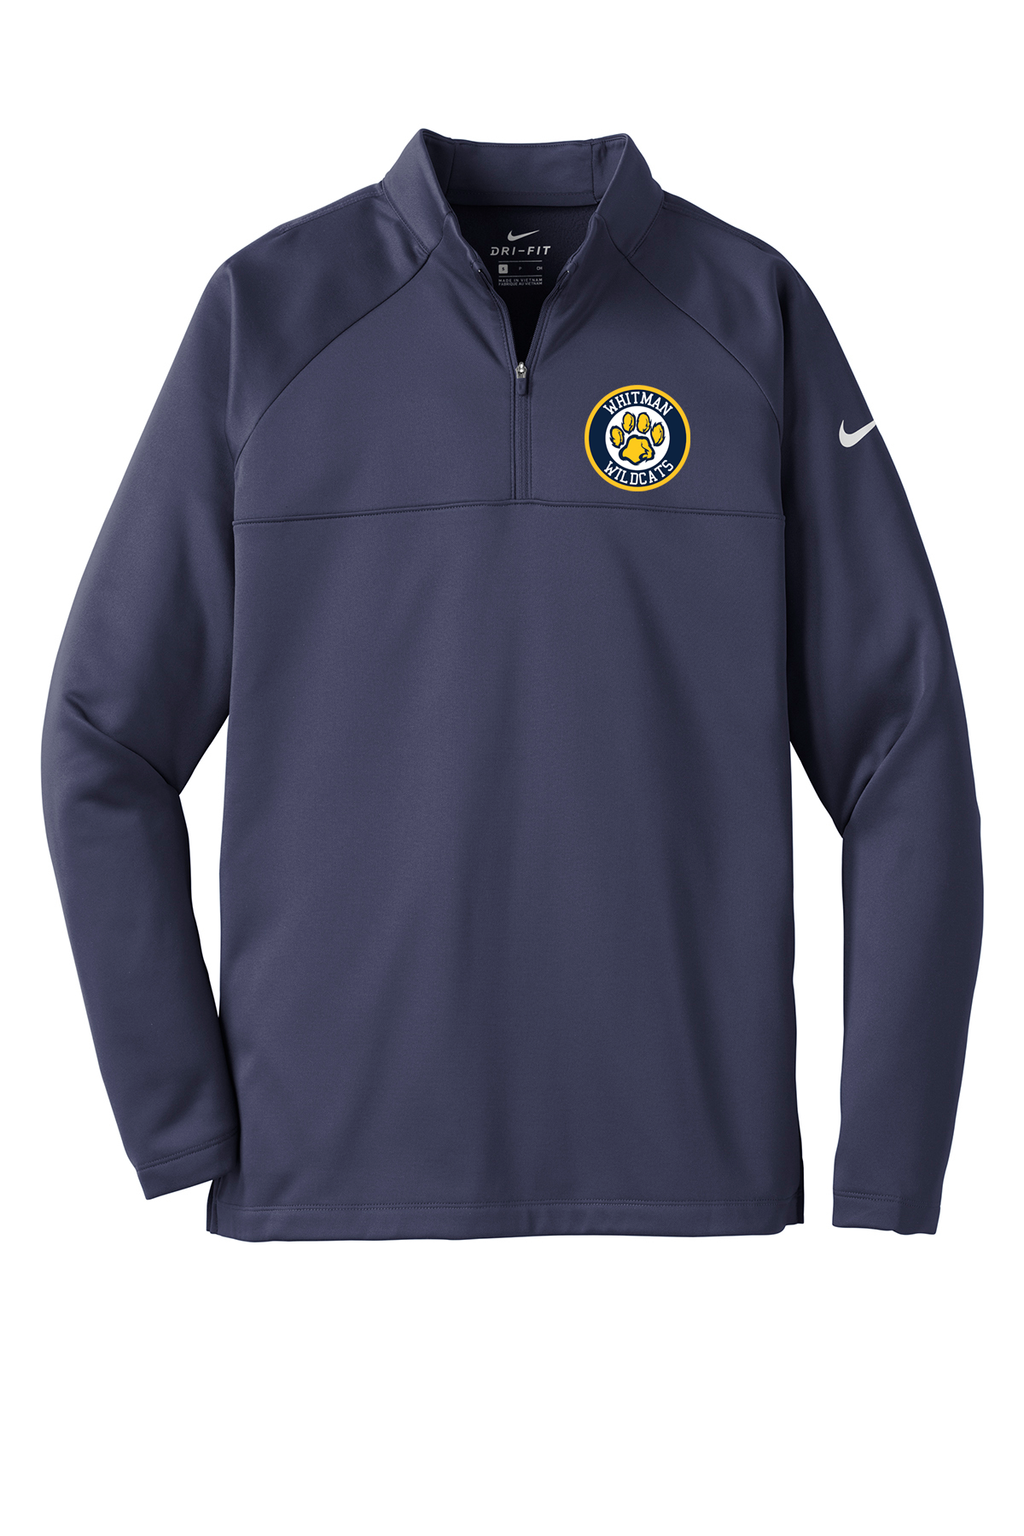 Whitman Wildcats Nike Therma-FIT Fleece